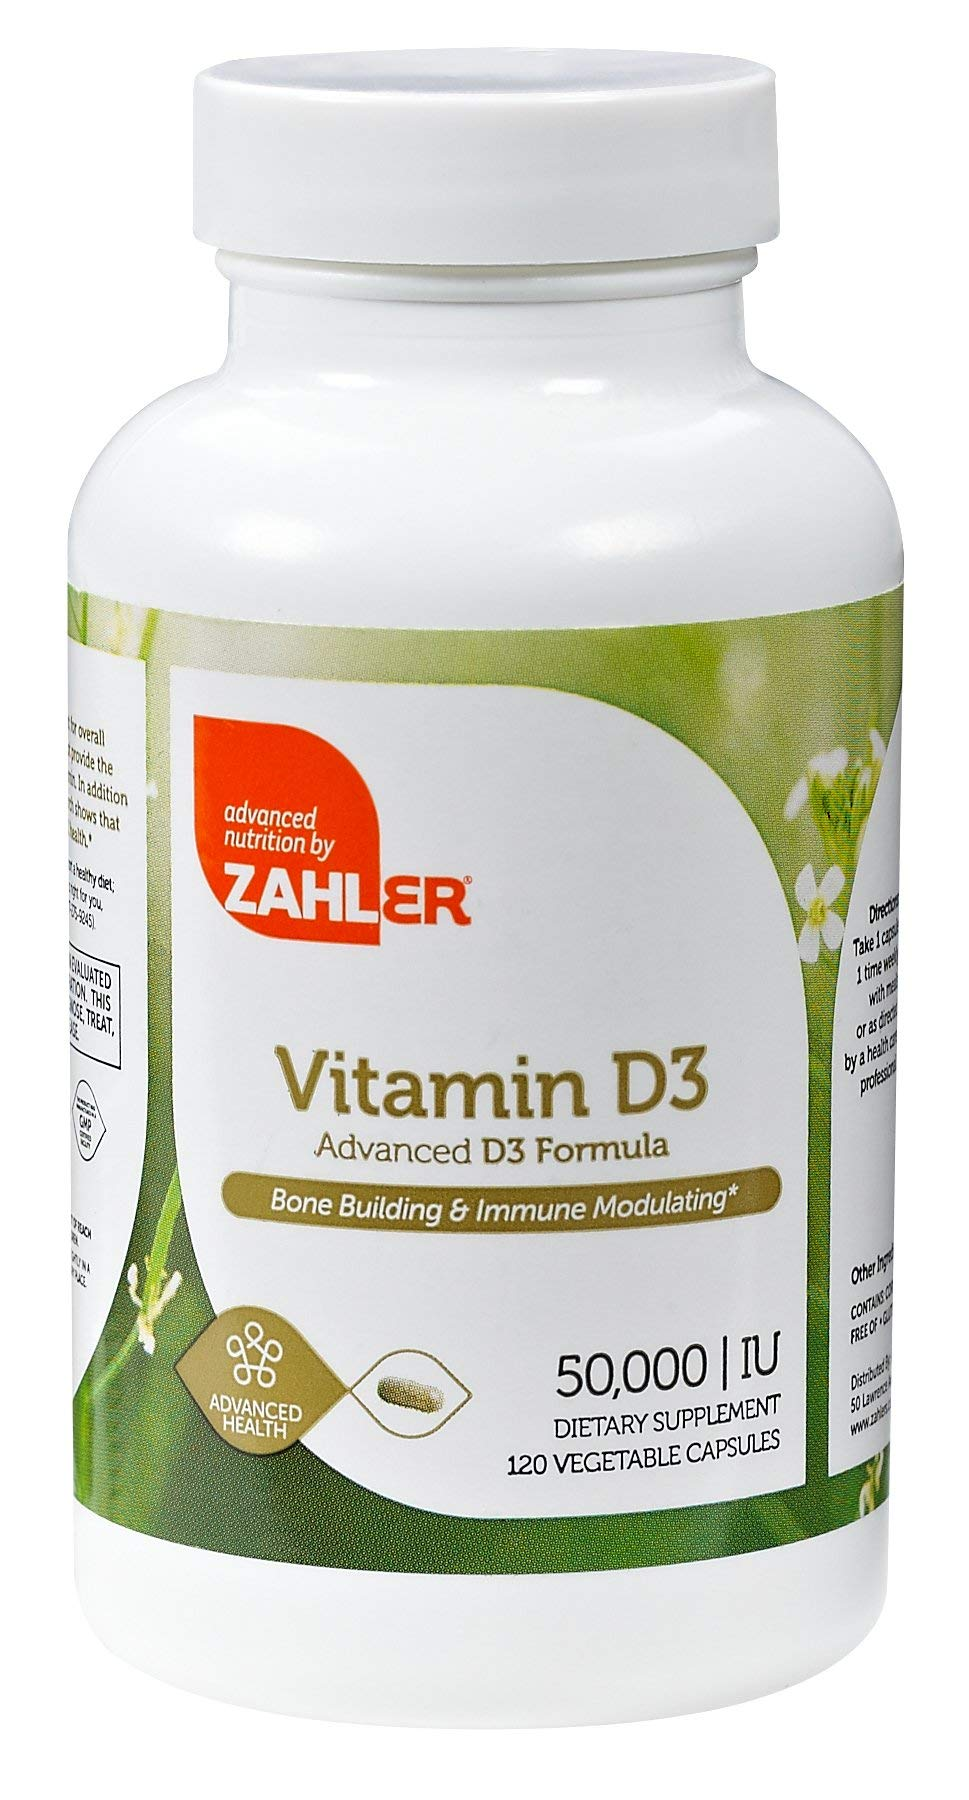 Zahler Vitamin D3 50,000IU, an All-Natural Supplement Supporting Bone Muscle Teeth and Immune System, Advanced Formula Targeting Vitamin D Deficiencies, Certified Kosher, 120 Capsulses by Zahler